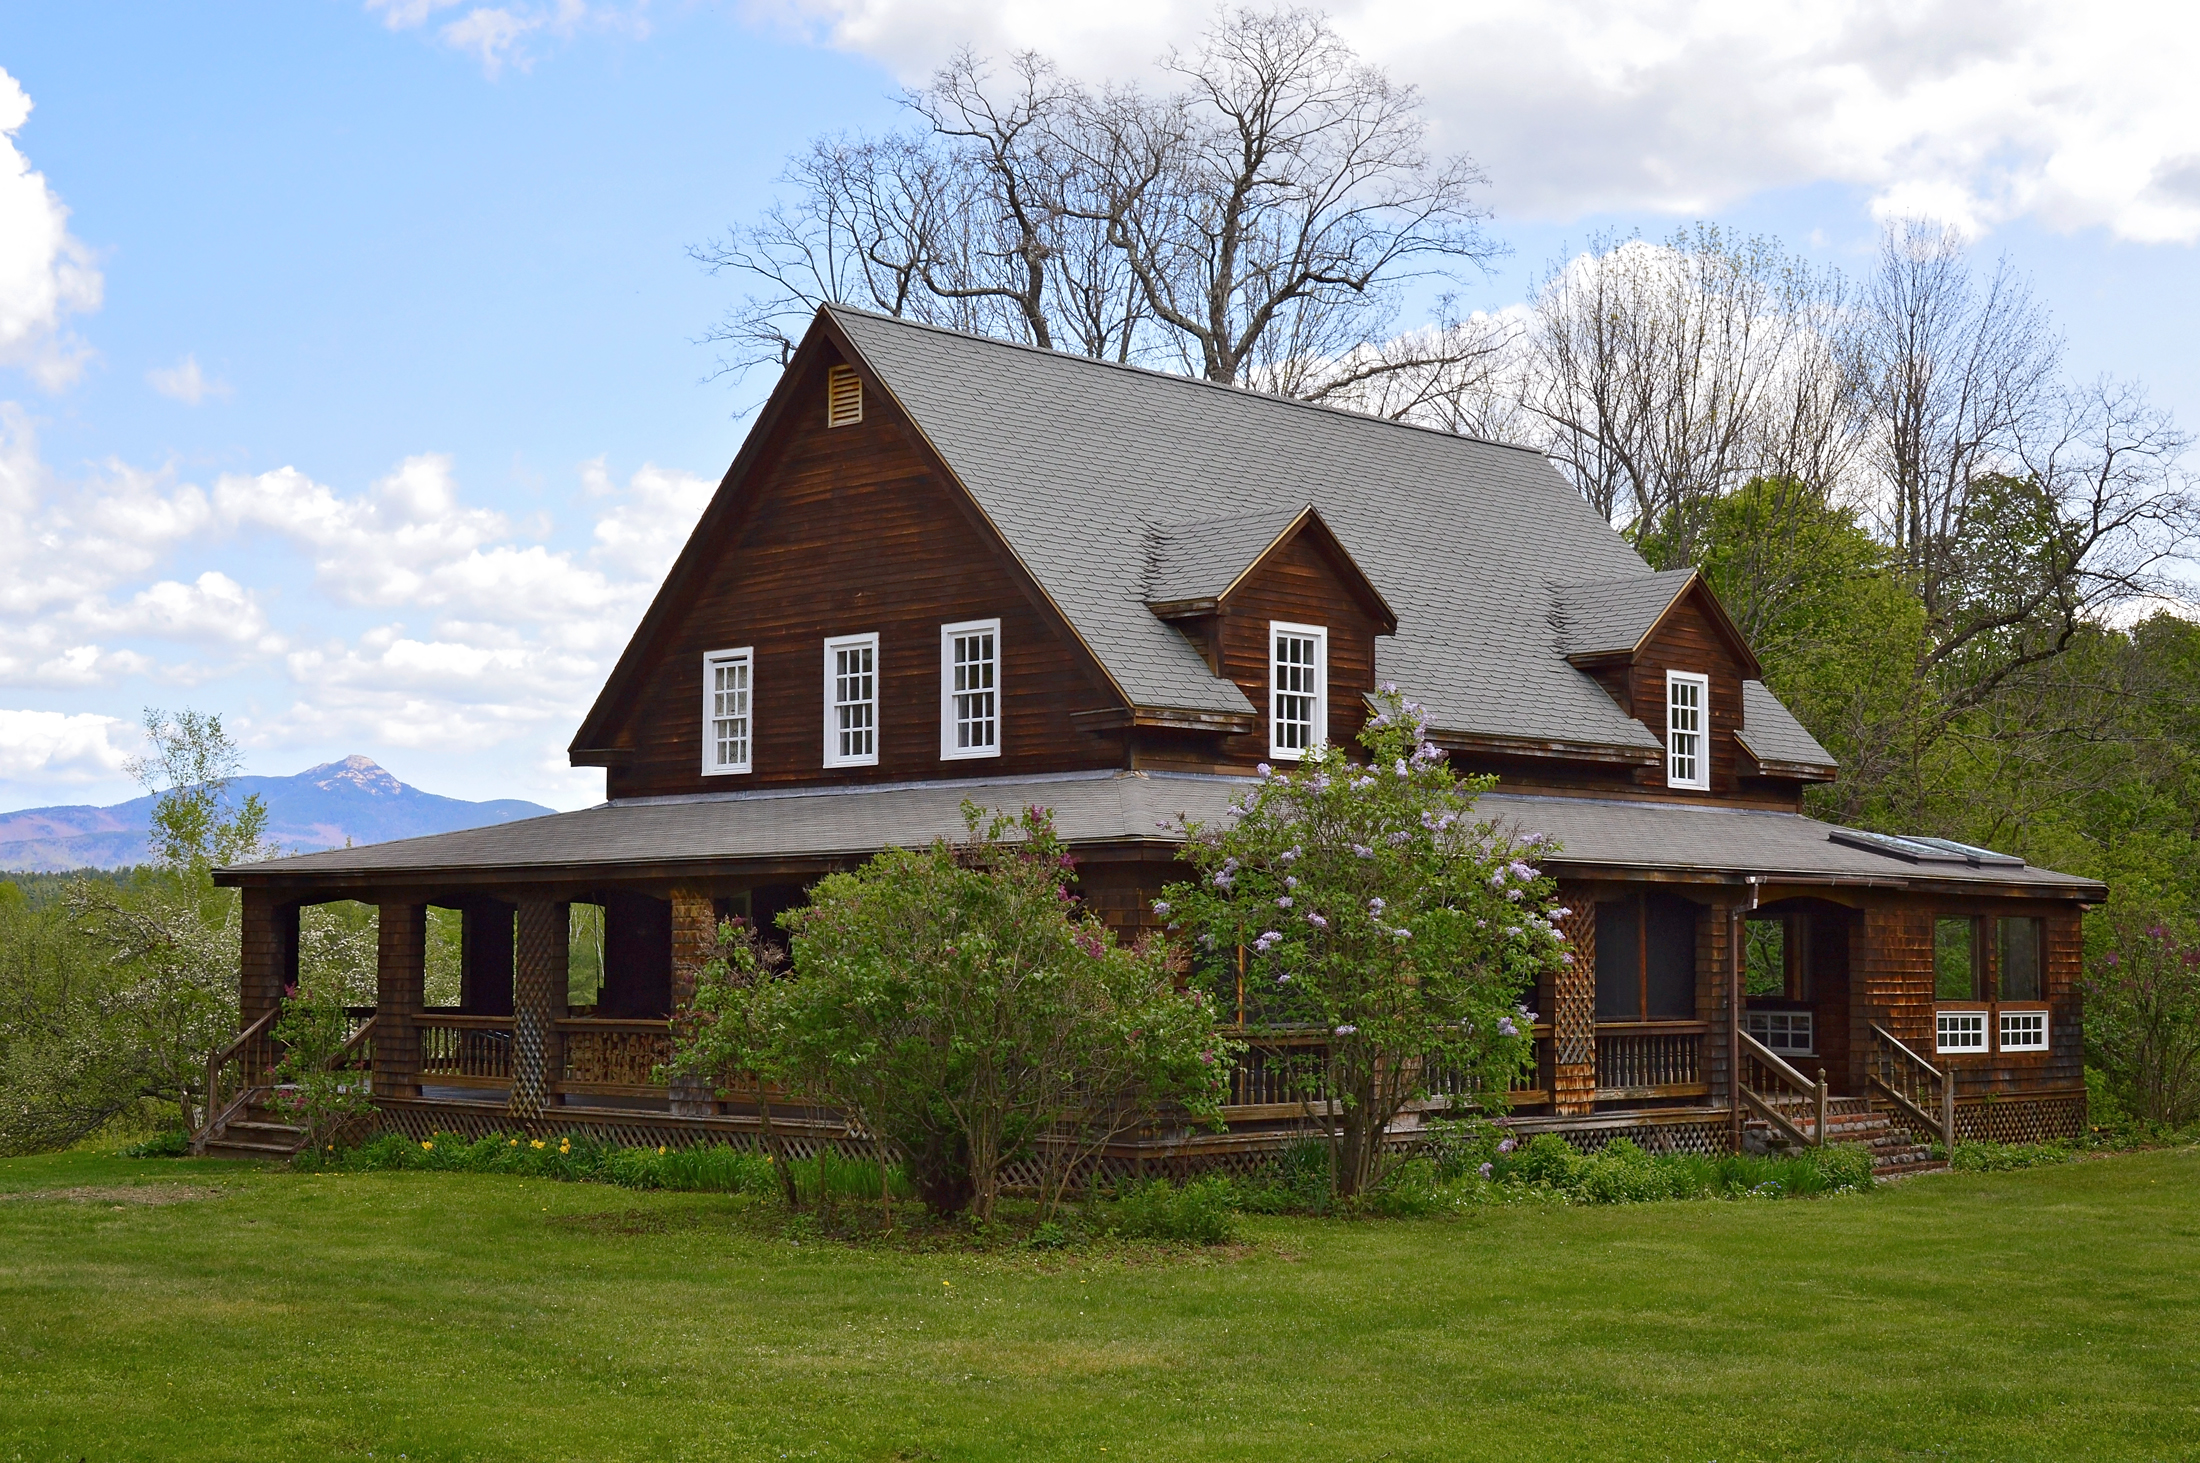 Single Family Home for Sale at Peaceful Cleveland Hill Retreat 2248 Cleveland Hill Rd Tamworth, New Hampshire, 03886 United States